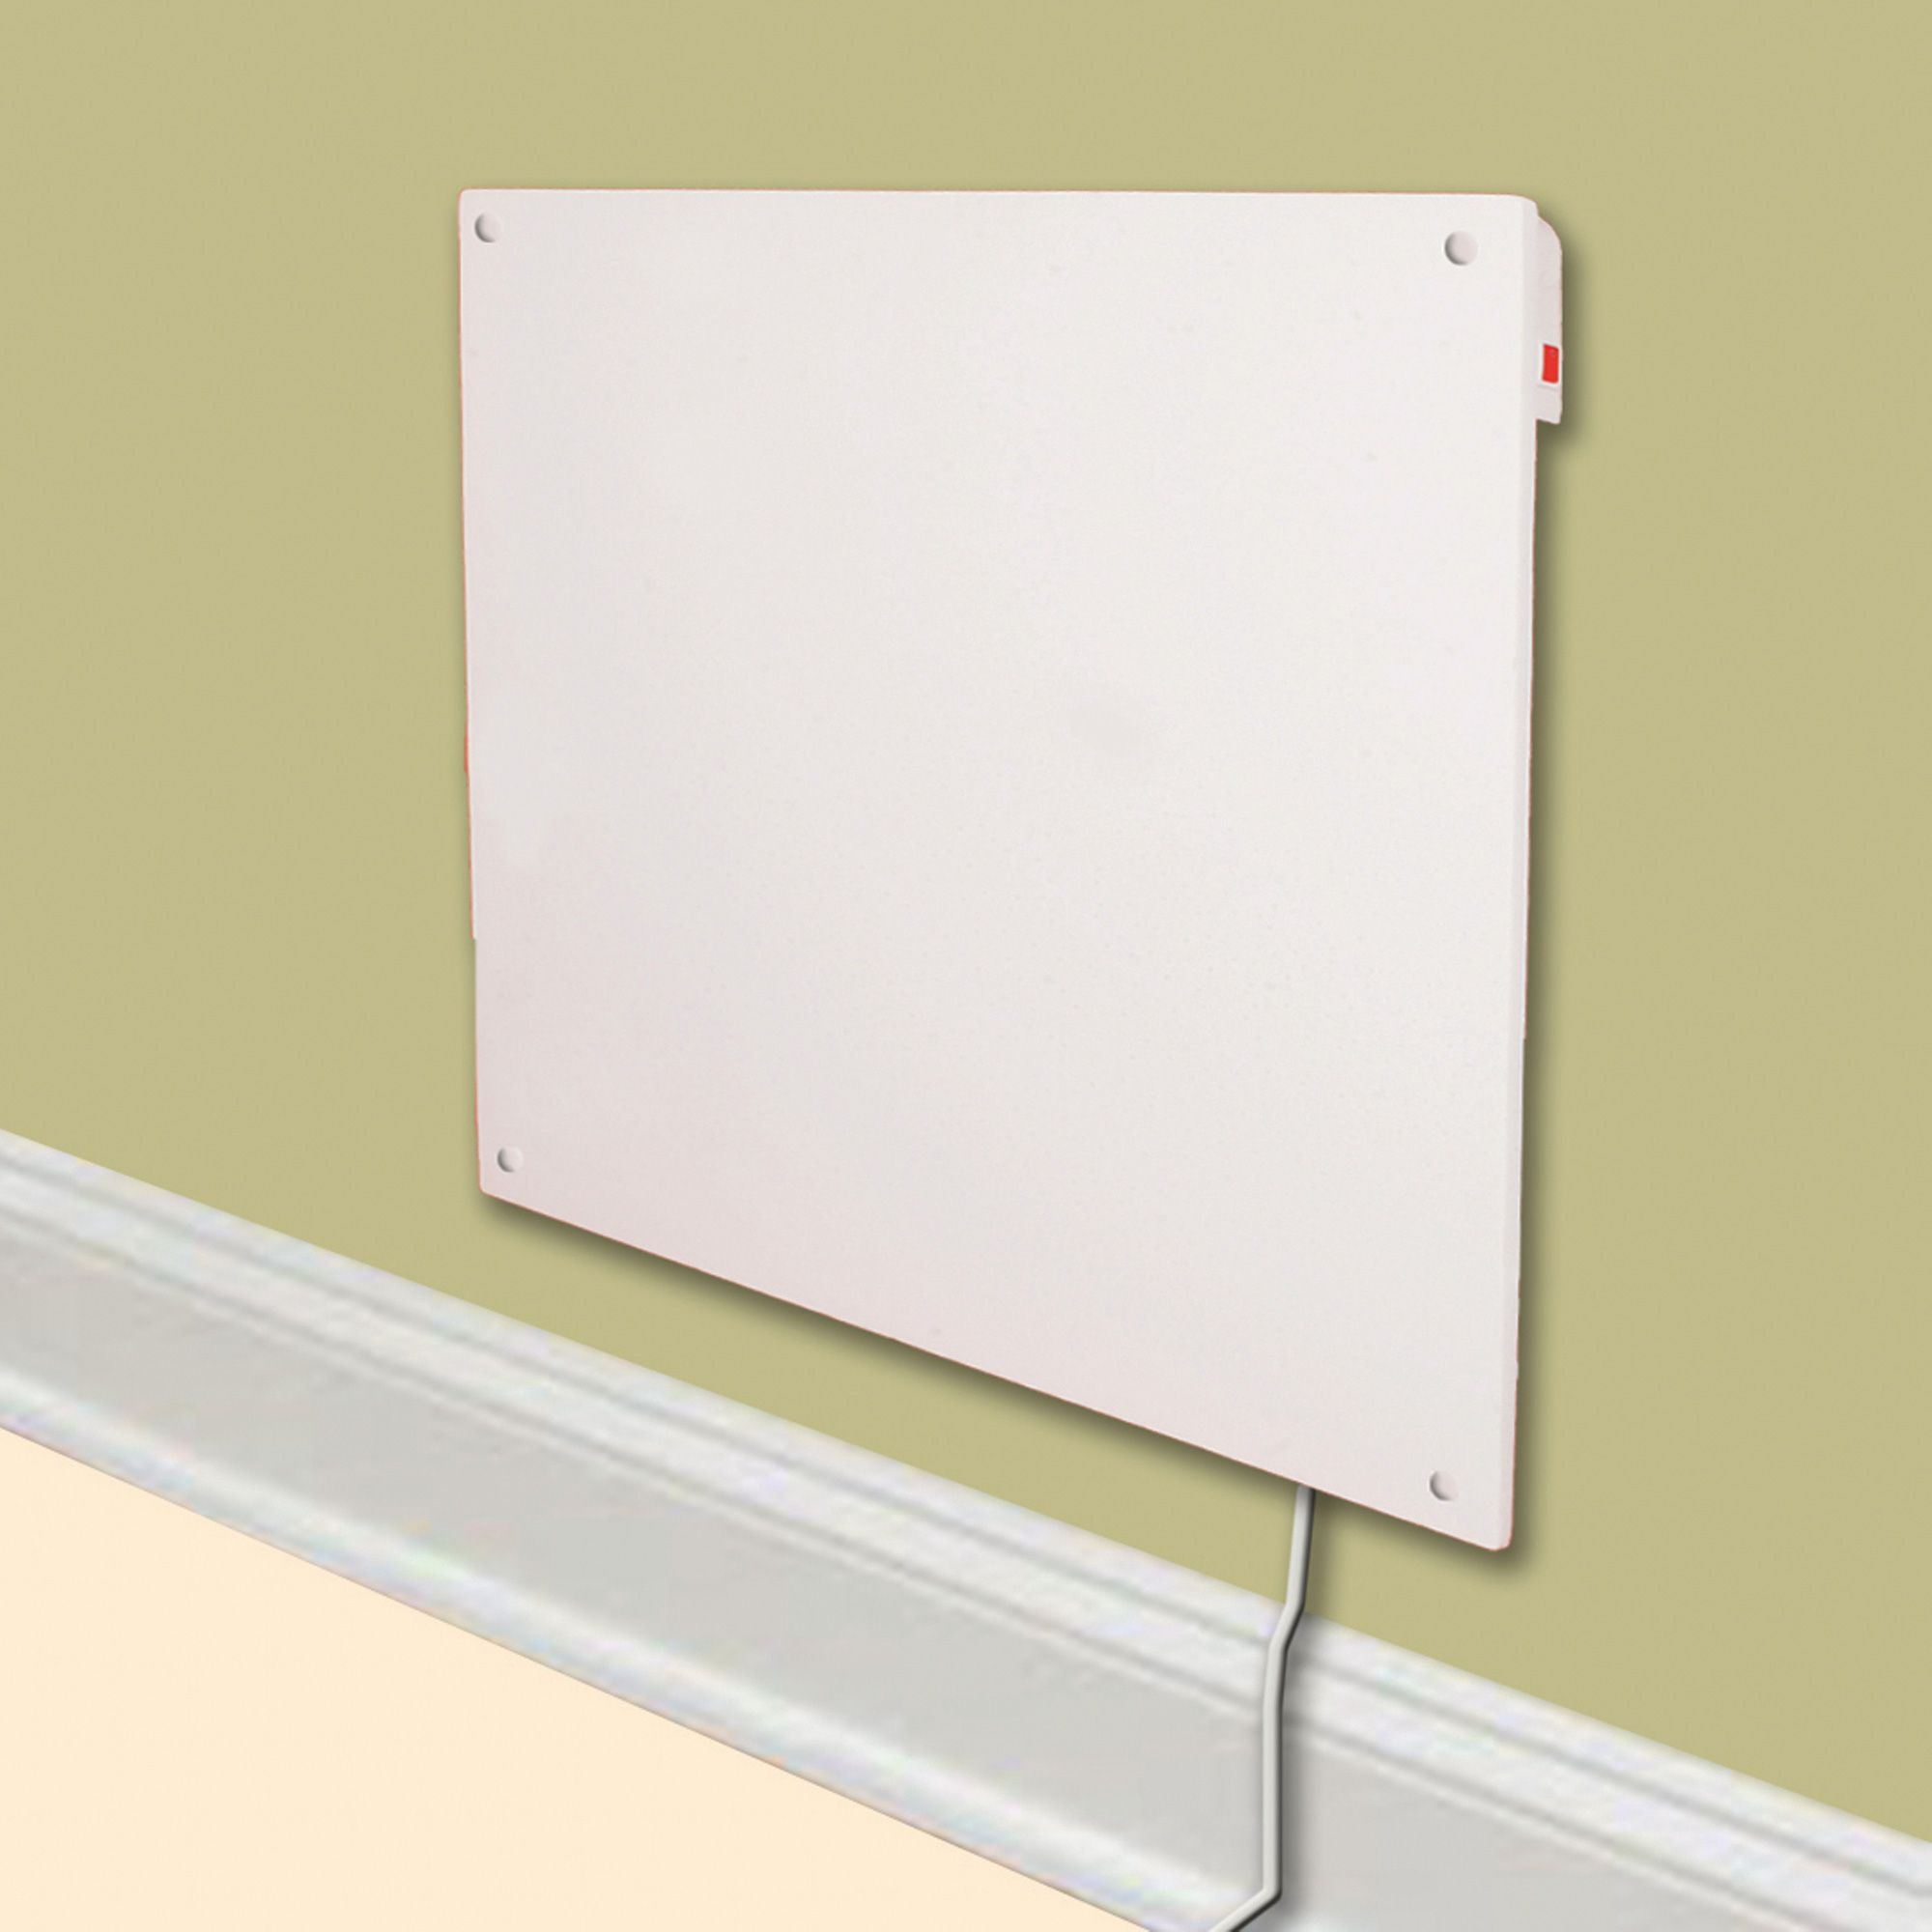 Electric Wall Heaters for Homes | Cozy-Heater Electric ...